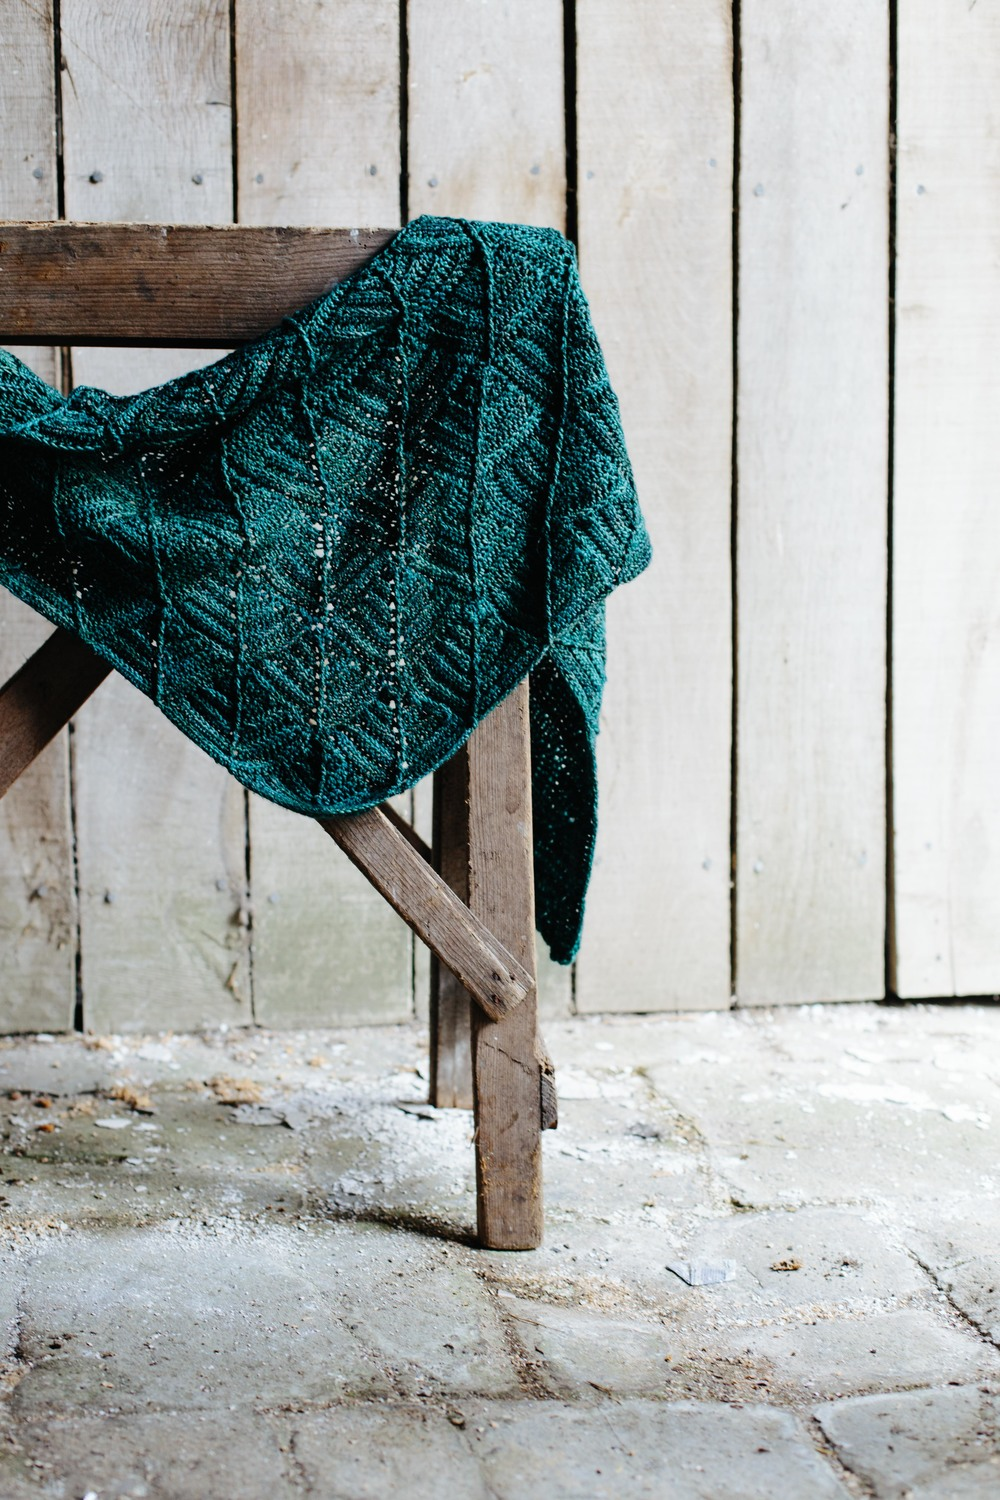 Pinetum Shawl by The Crochet Project